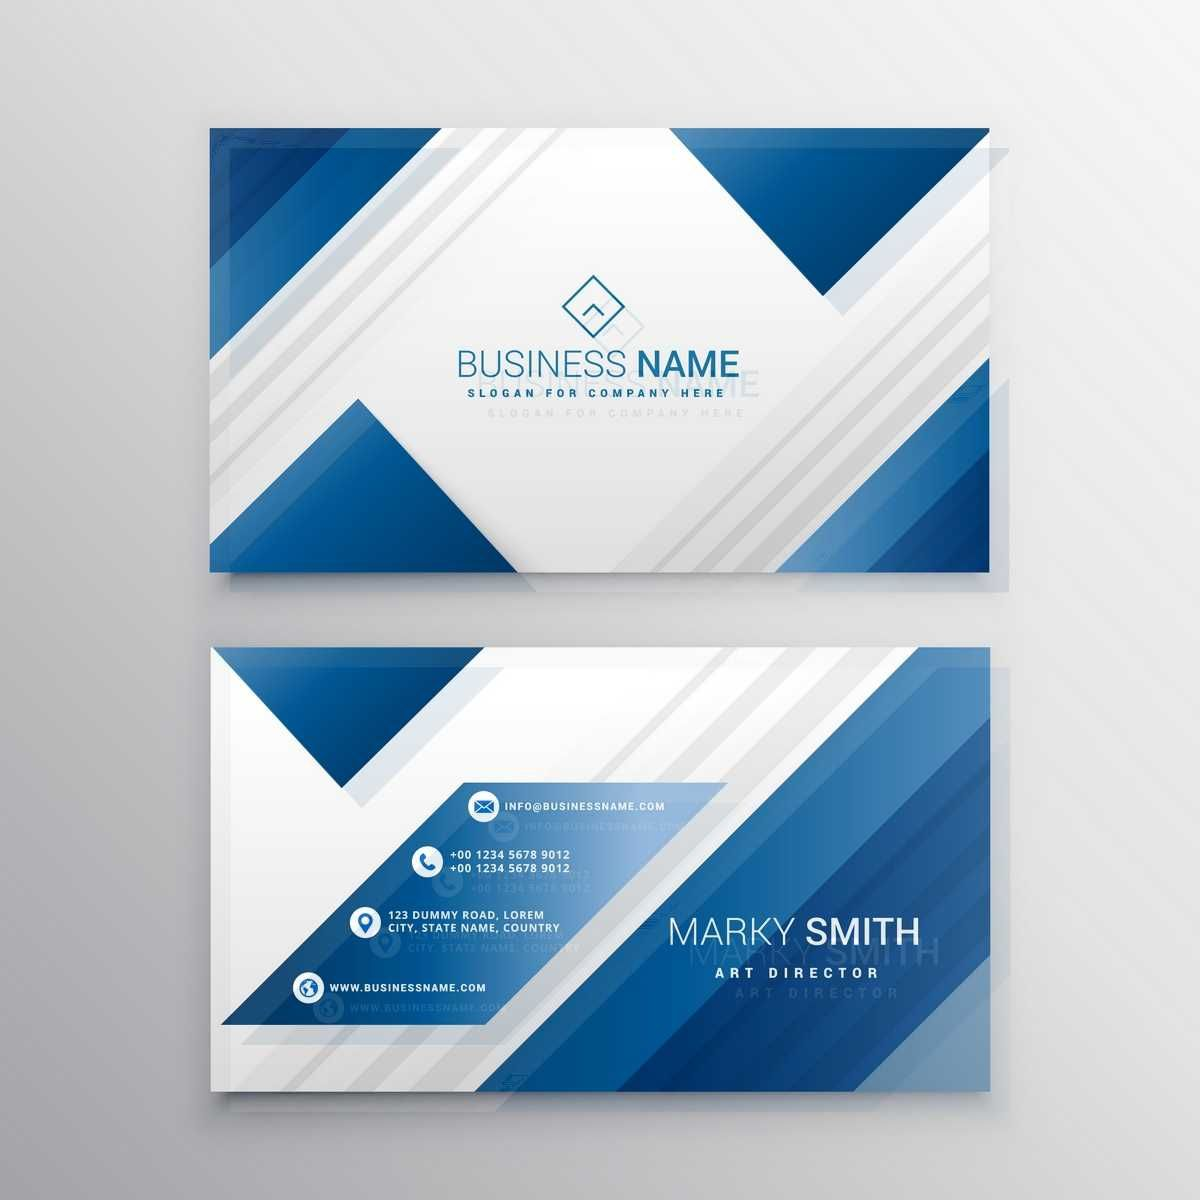 Geometric Business Card With Blue Shapes - FREE | Полиграфия ...